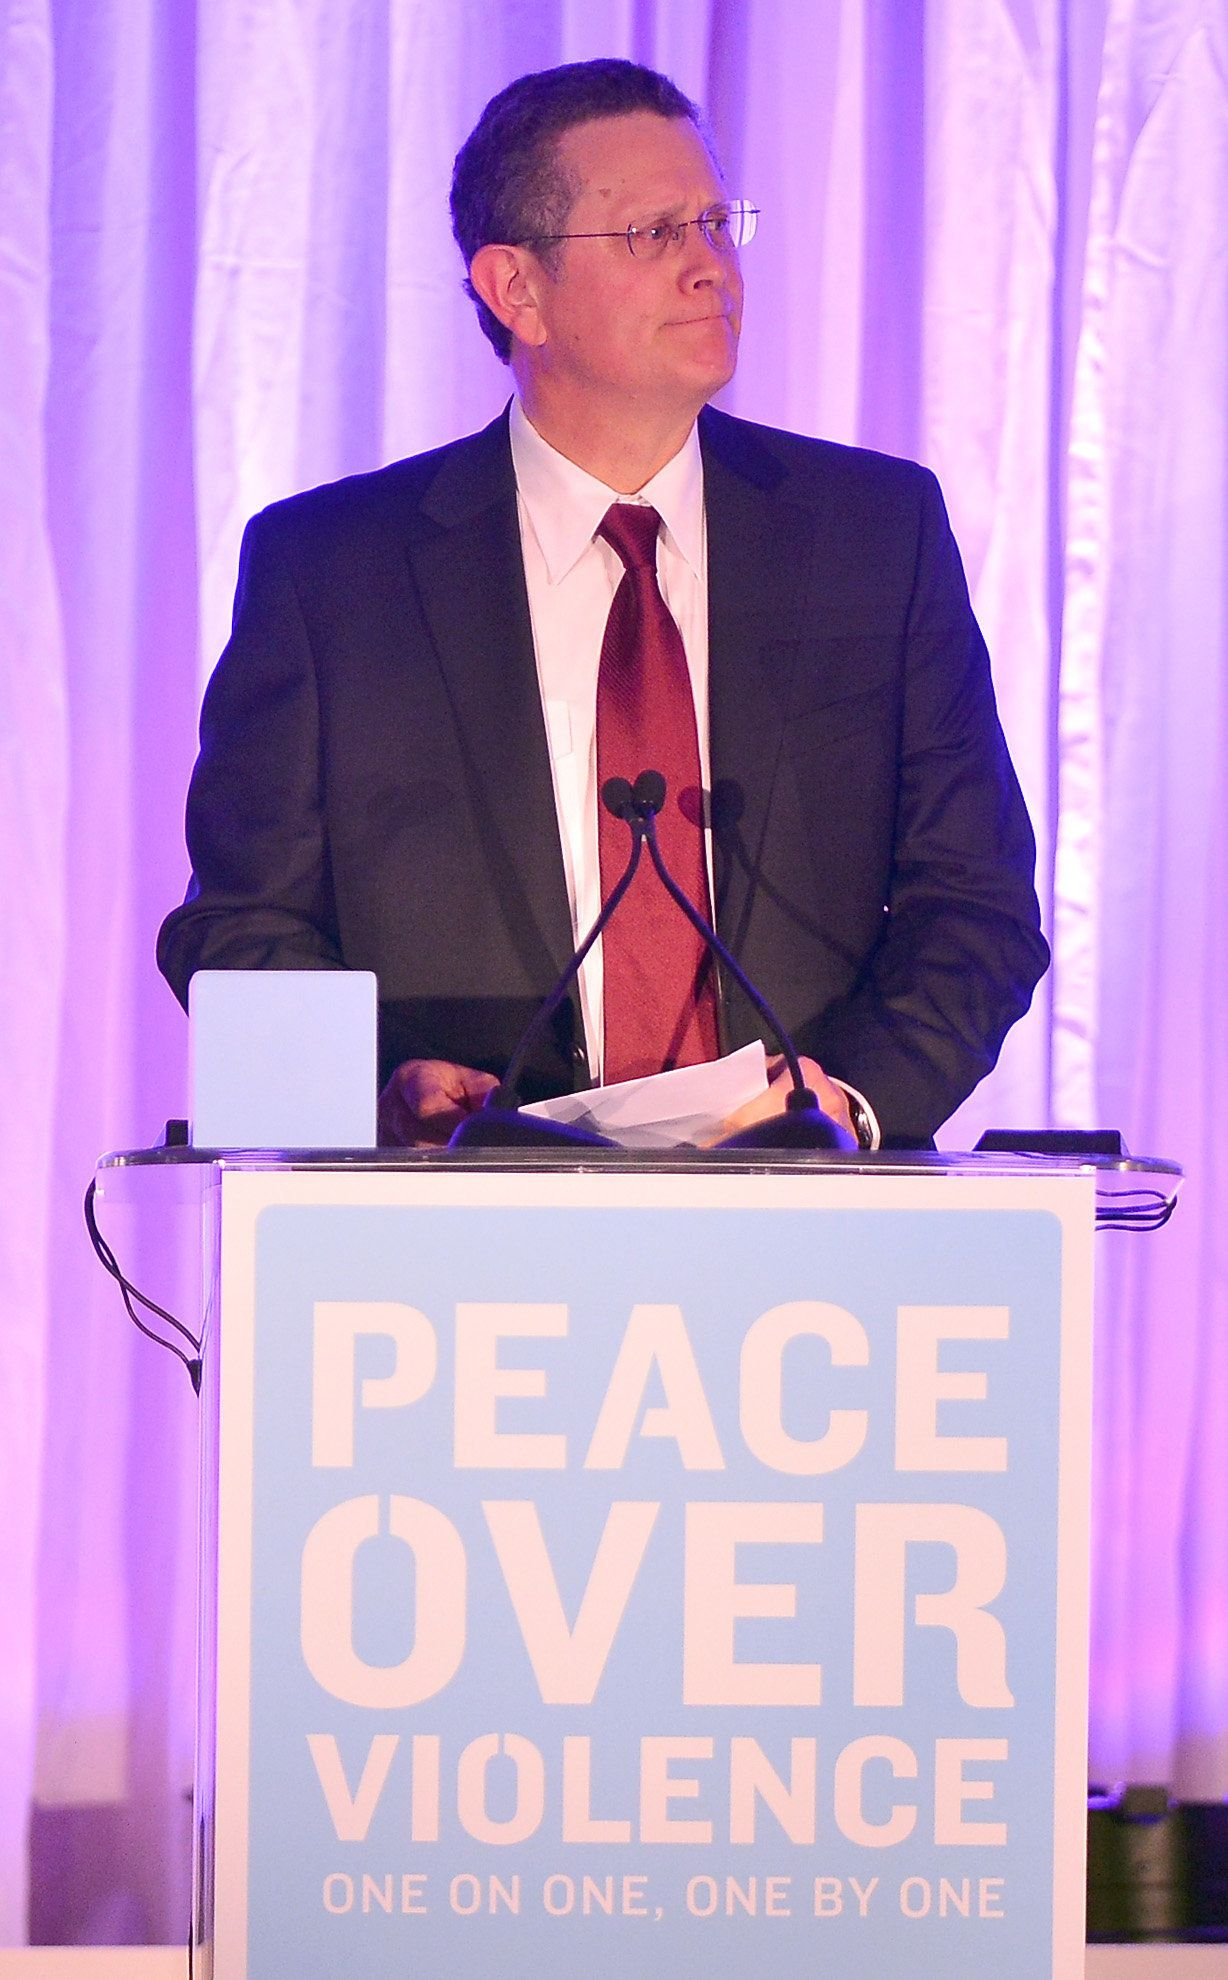 Researcher David Lisak is shown speaking at an awards ceremony in 2012 in California.